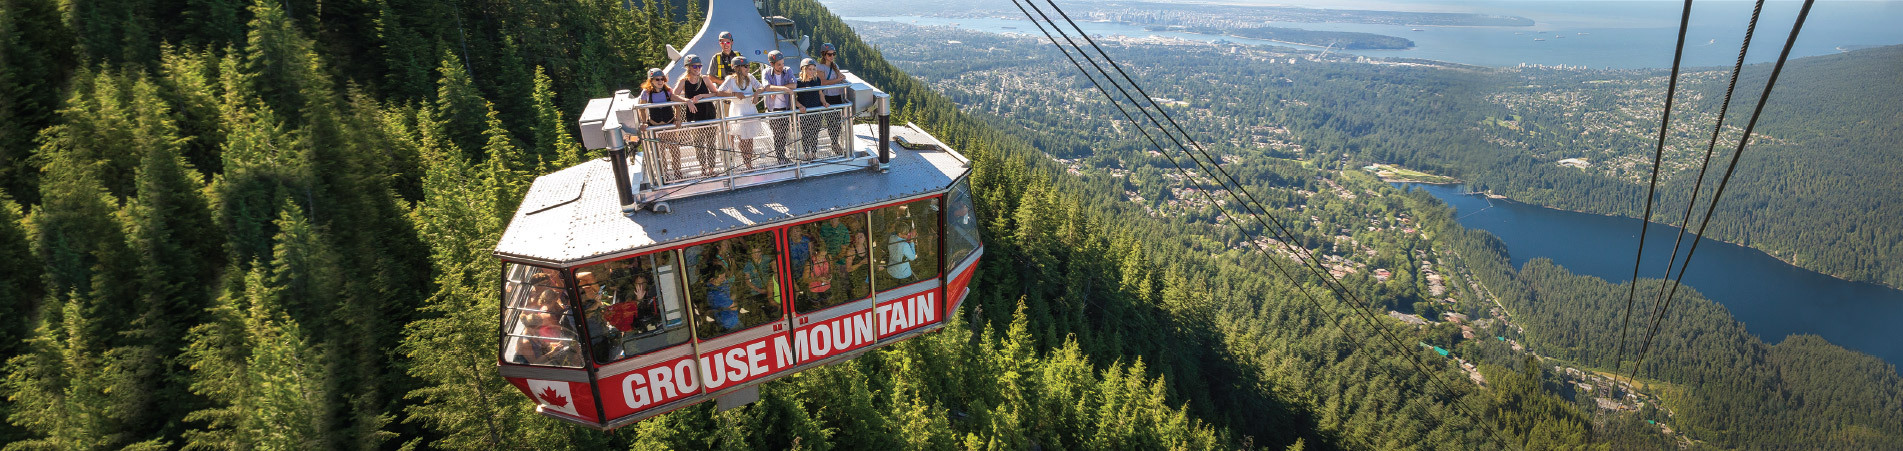 Skyride Surf Adventure at Grouse Mountain